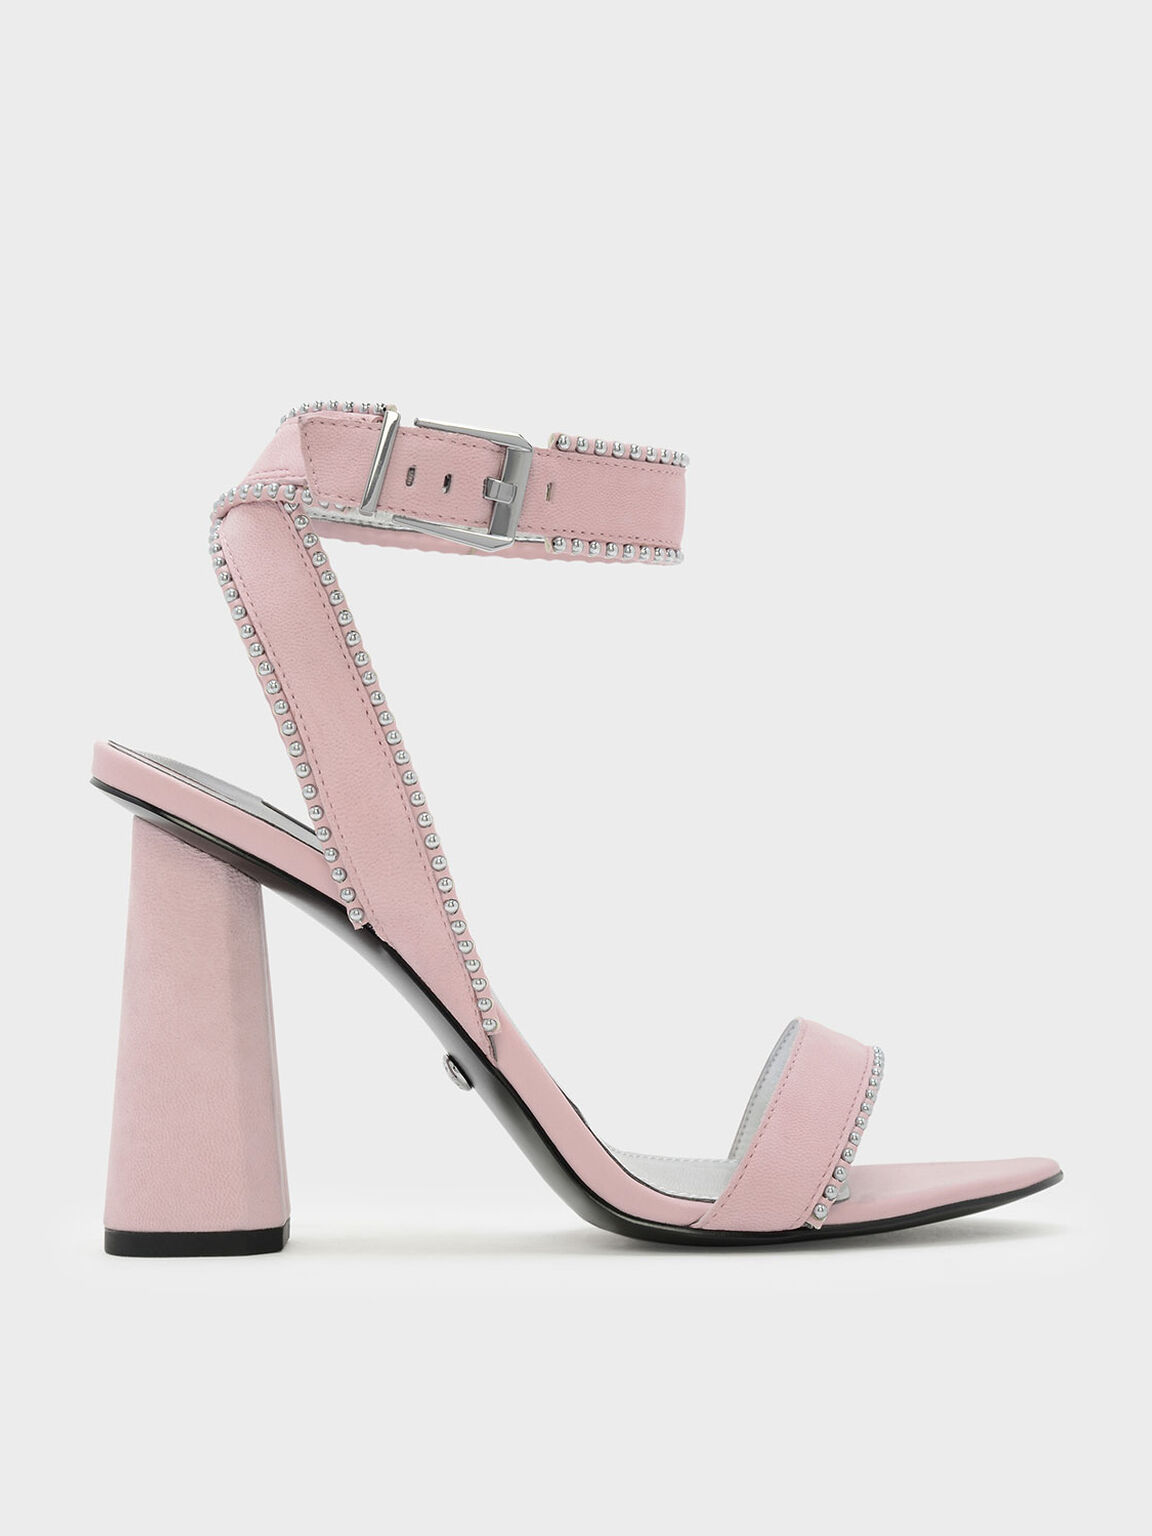 Bead Detail Leather Sandals, Pink, hi-res